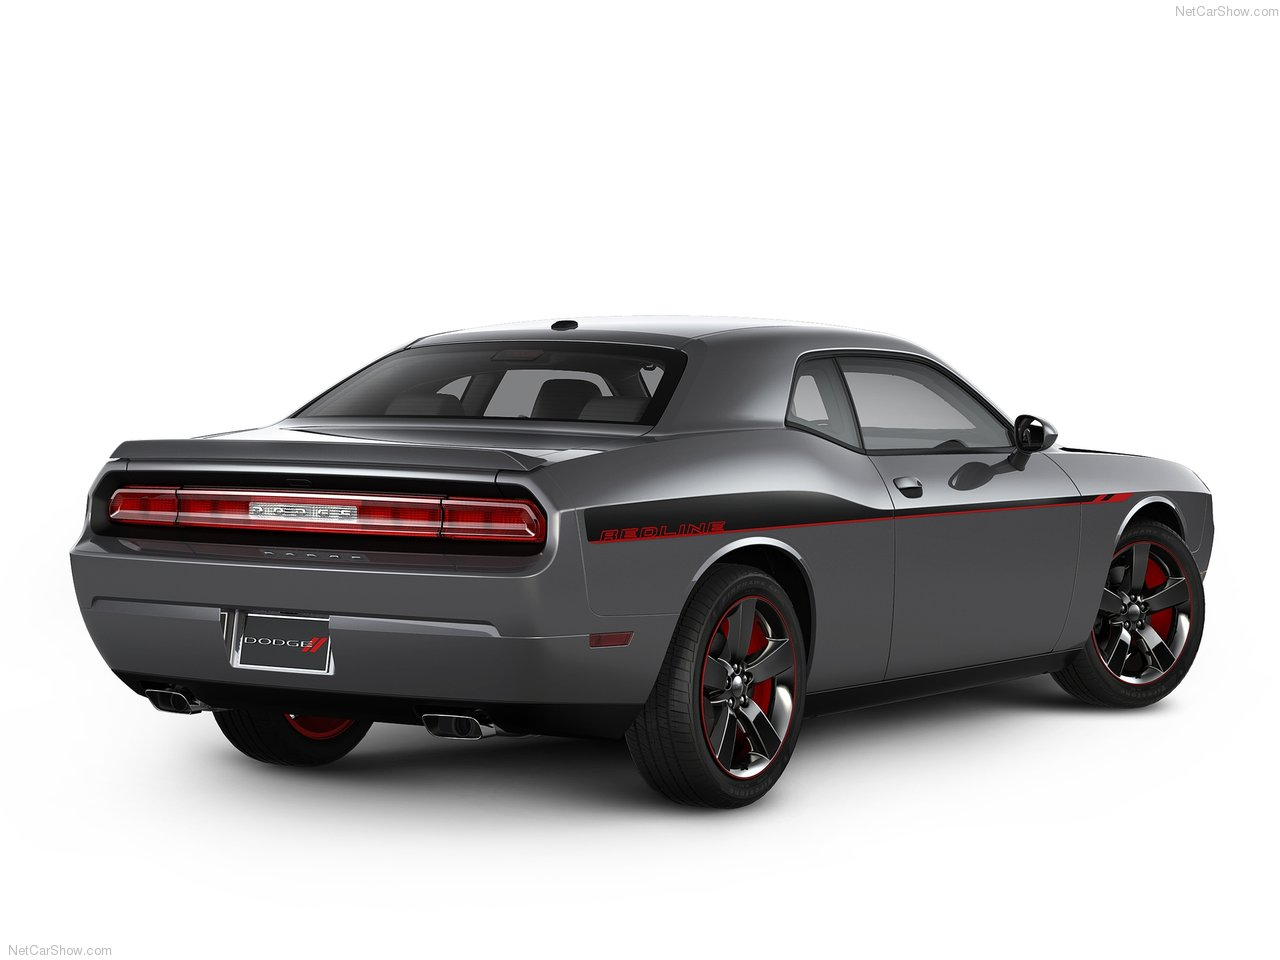 2019 Dodge Challenger Rallye Redline photo - 5